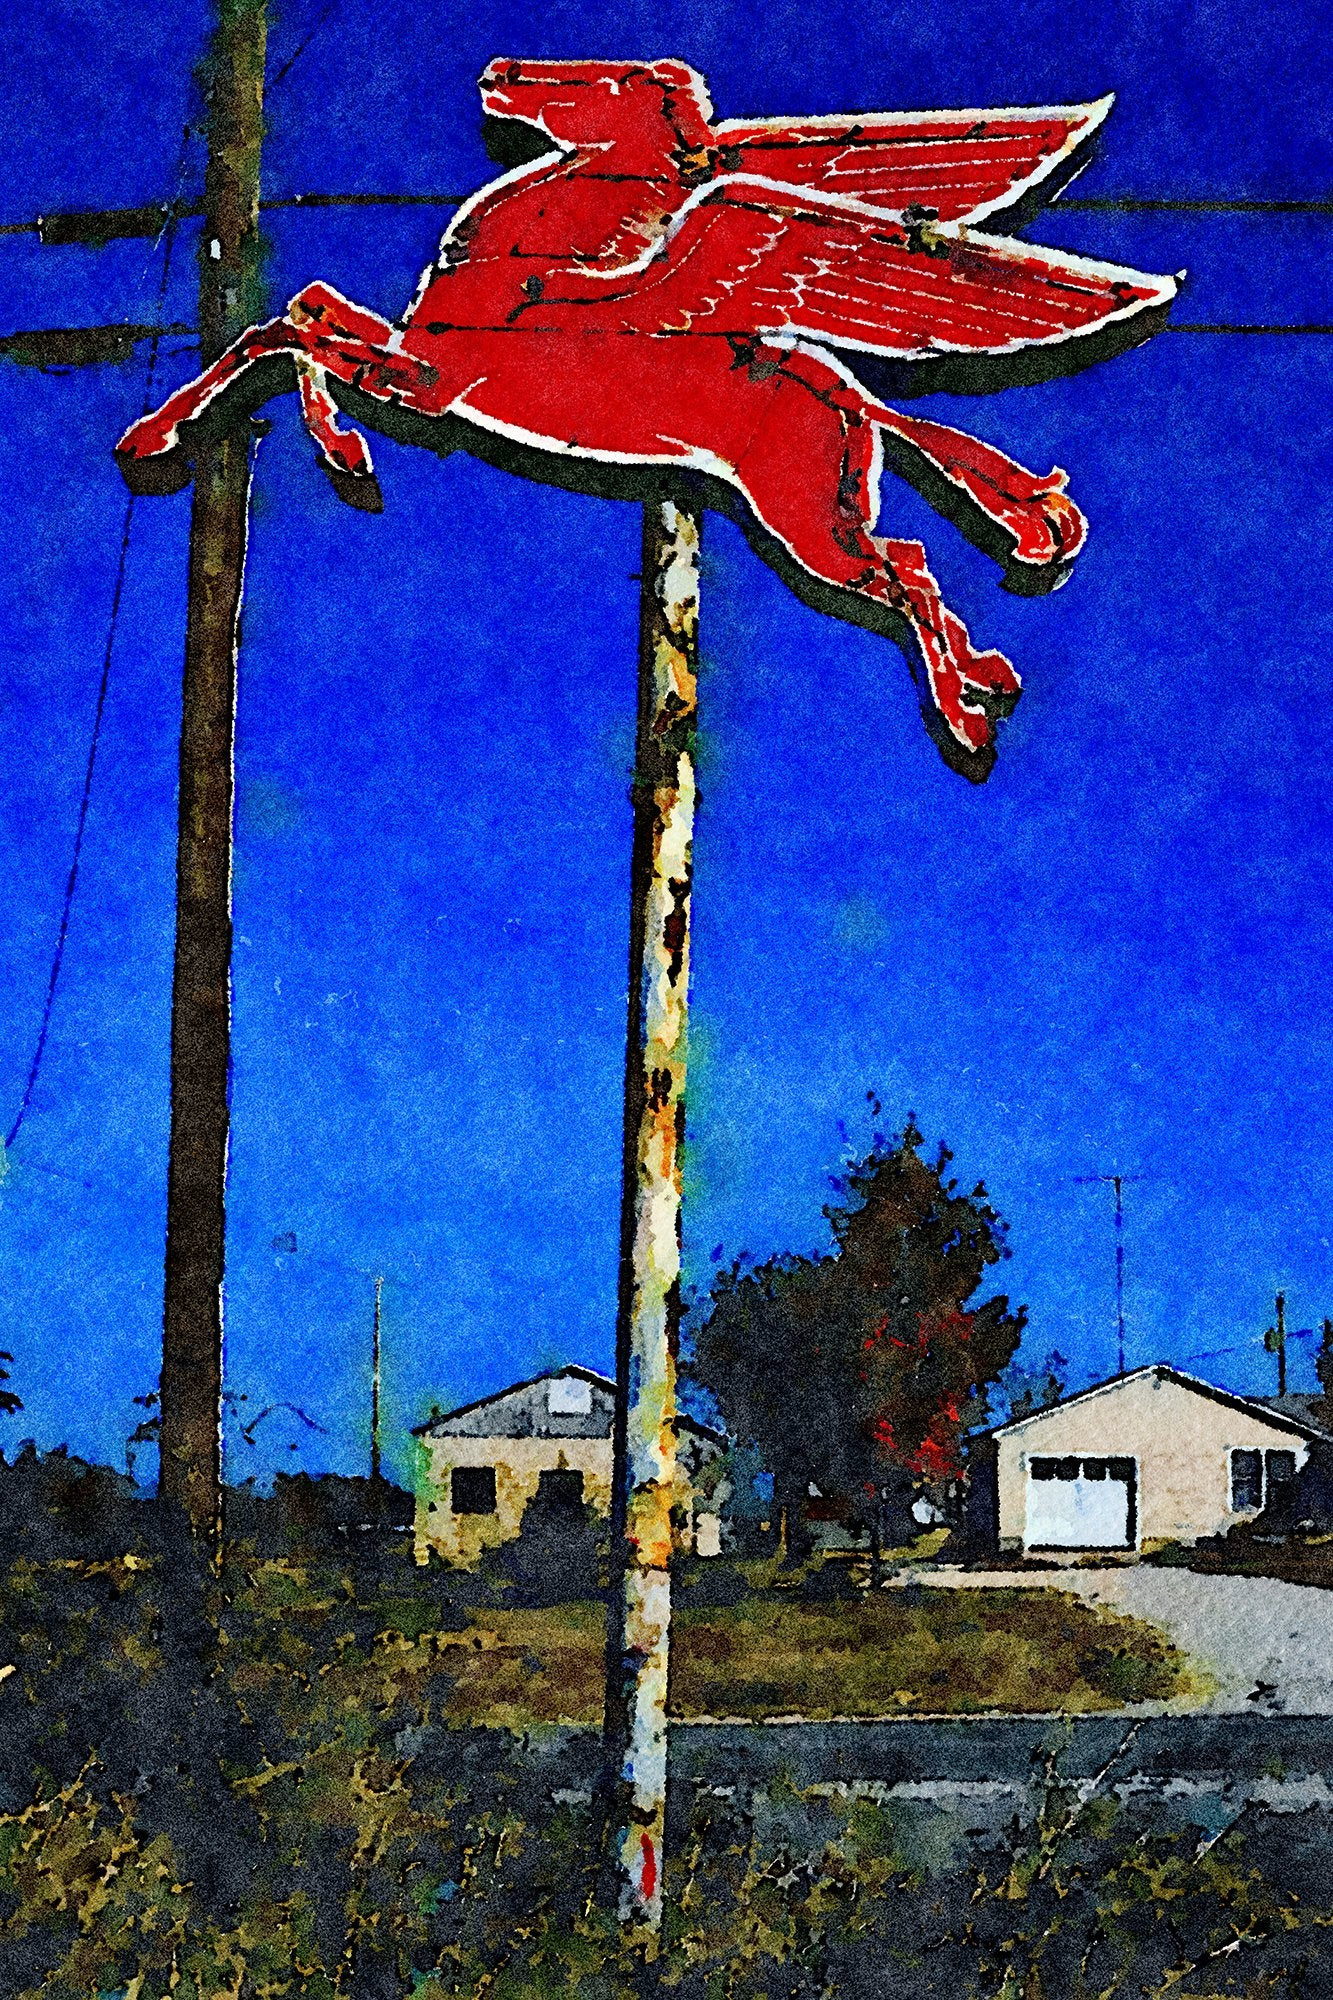 Flying Red Horse Mobil Sign, Route 60B, Mountain Grove, Missouri, Reworked, Series 1